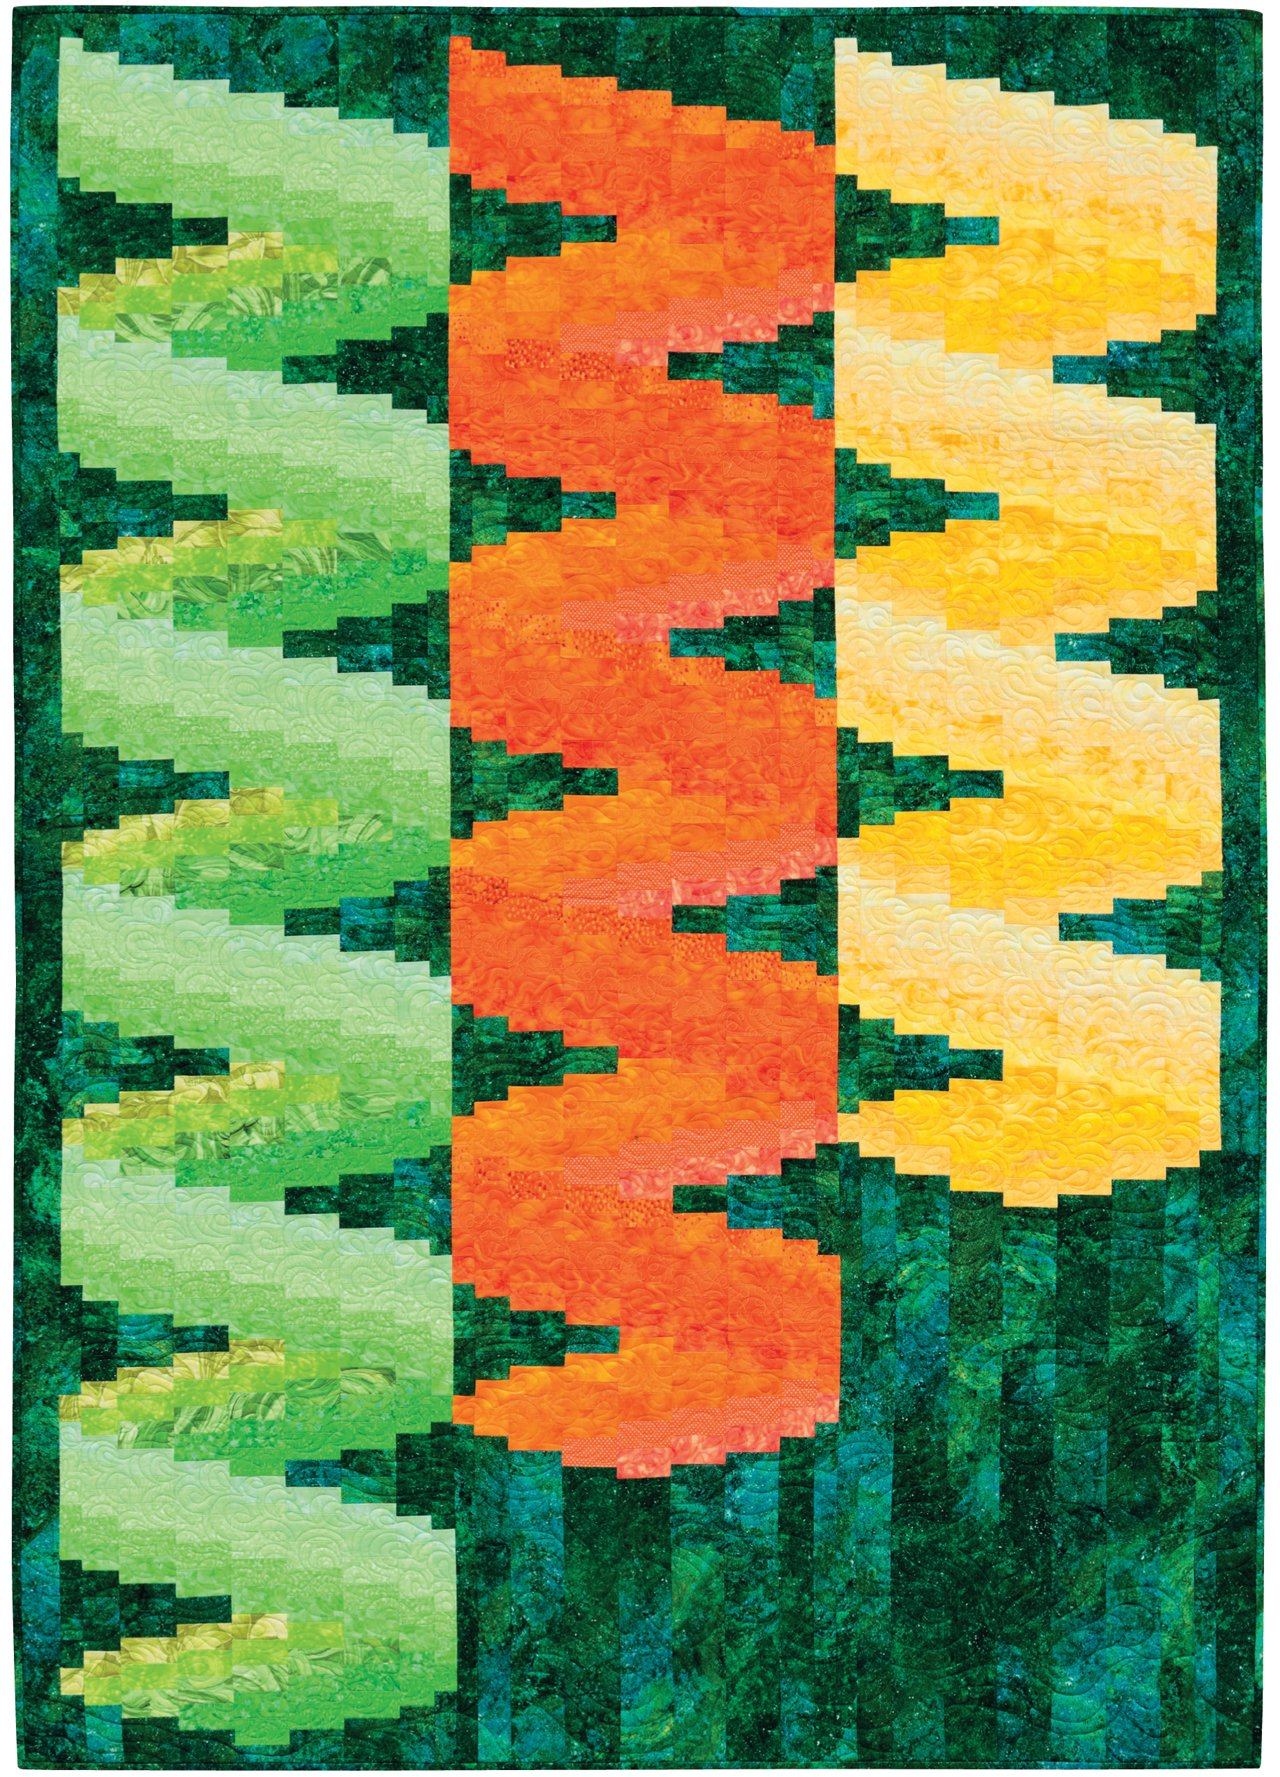 Twisted Bargello Quilt Pattern Free Awesome Inspiration Ideas